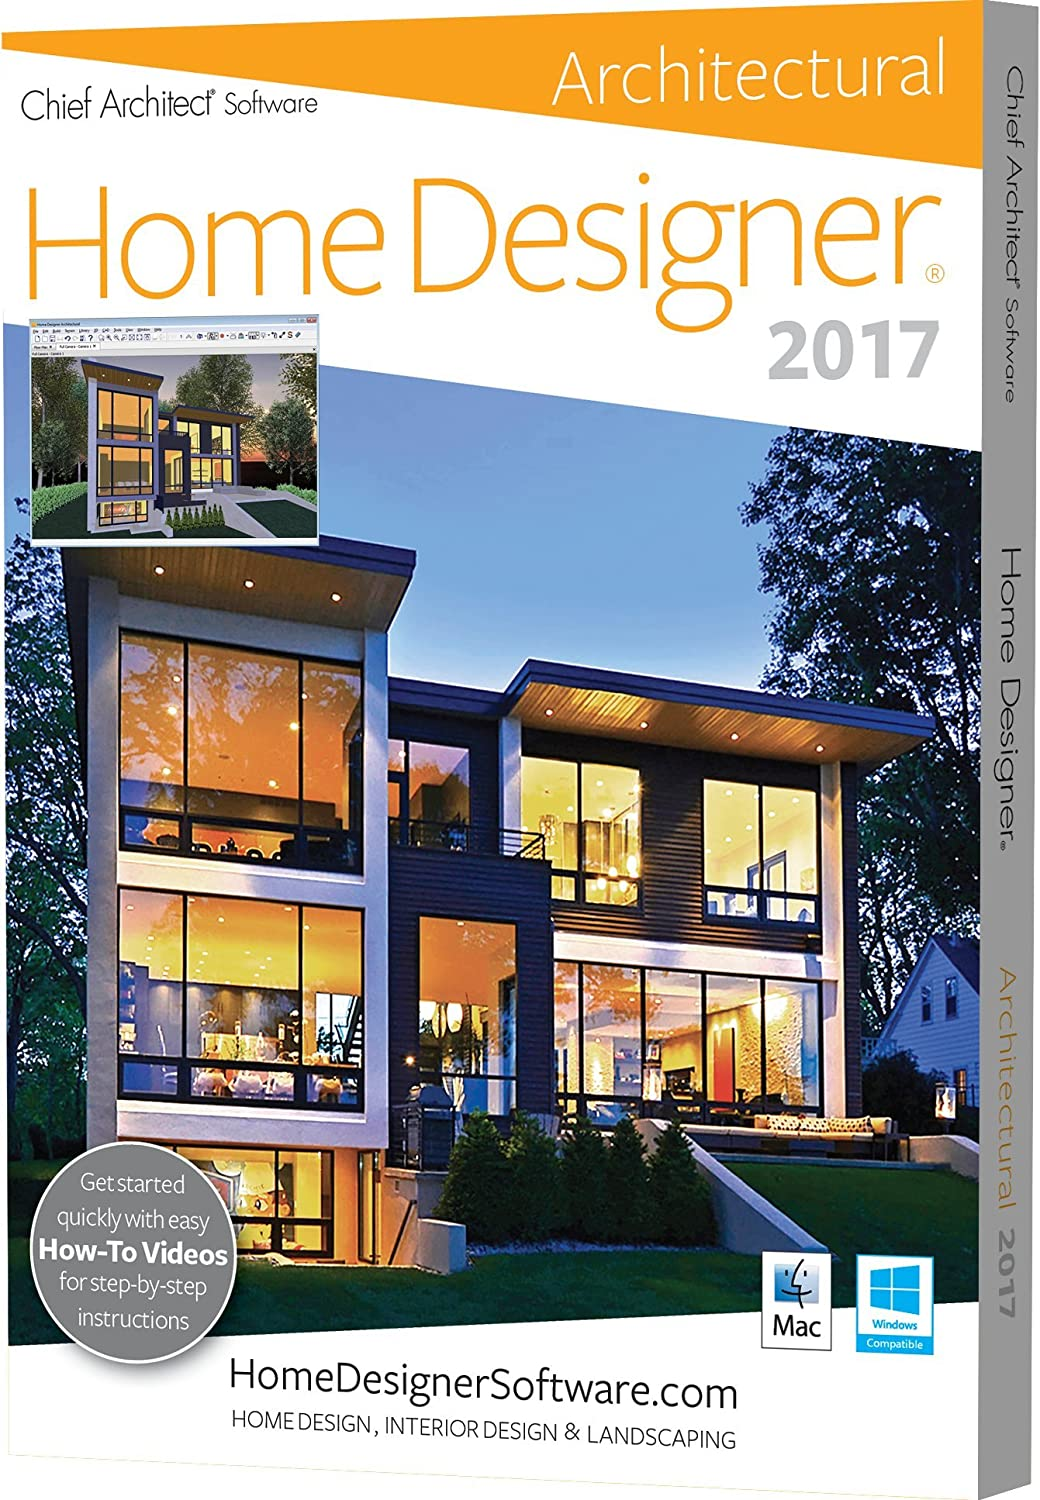 Home Designer Architectural 2017 (PC/Mac): Amazon.co.uk: Software